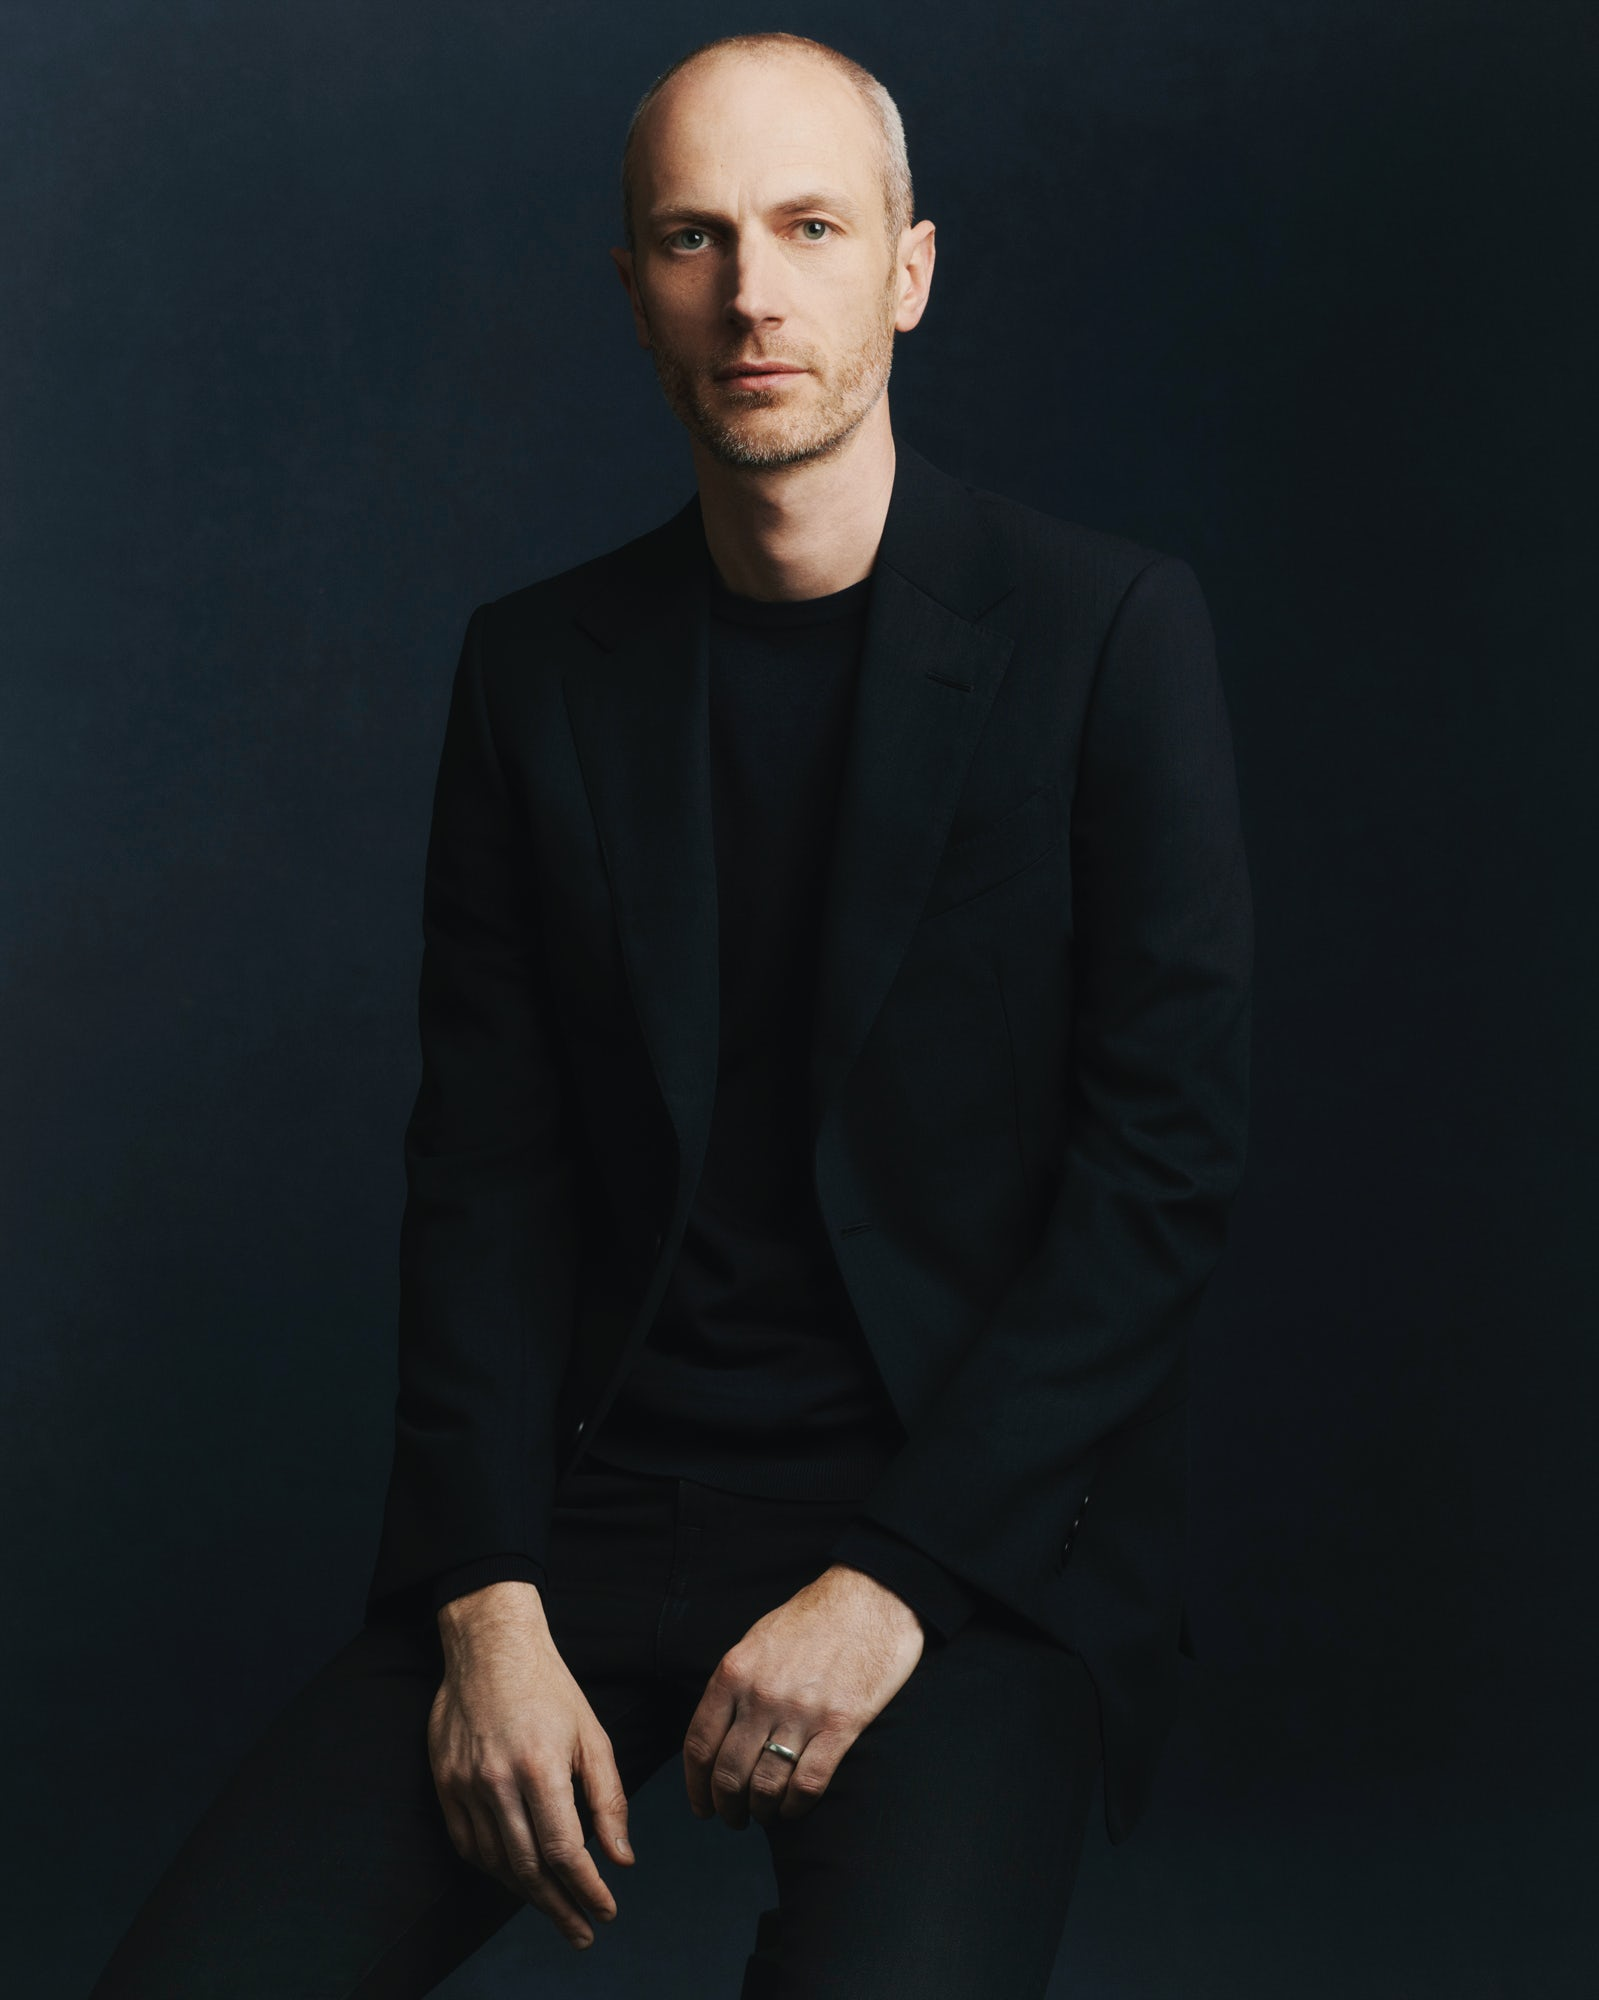 News Bites | Dunhill Names New Creative Director, Roland Mouret Exits Robert Clergerie